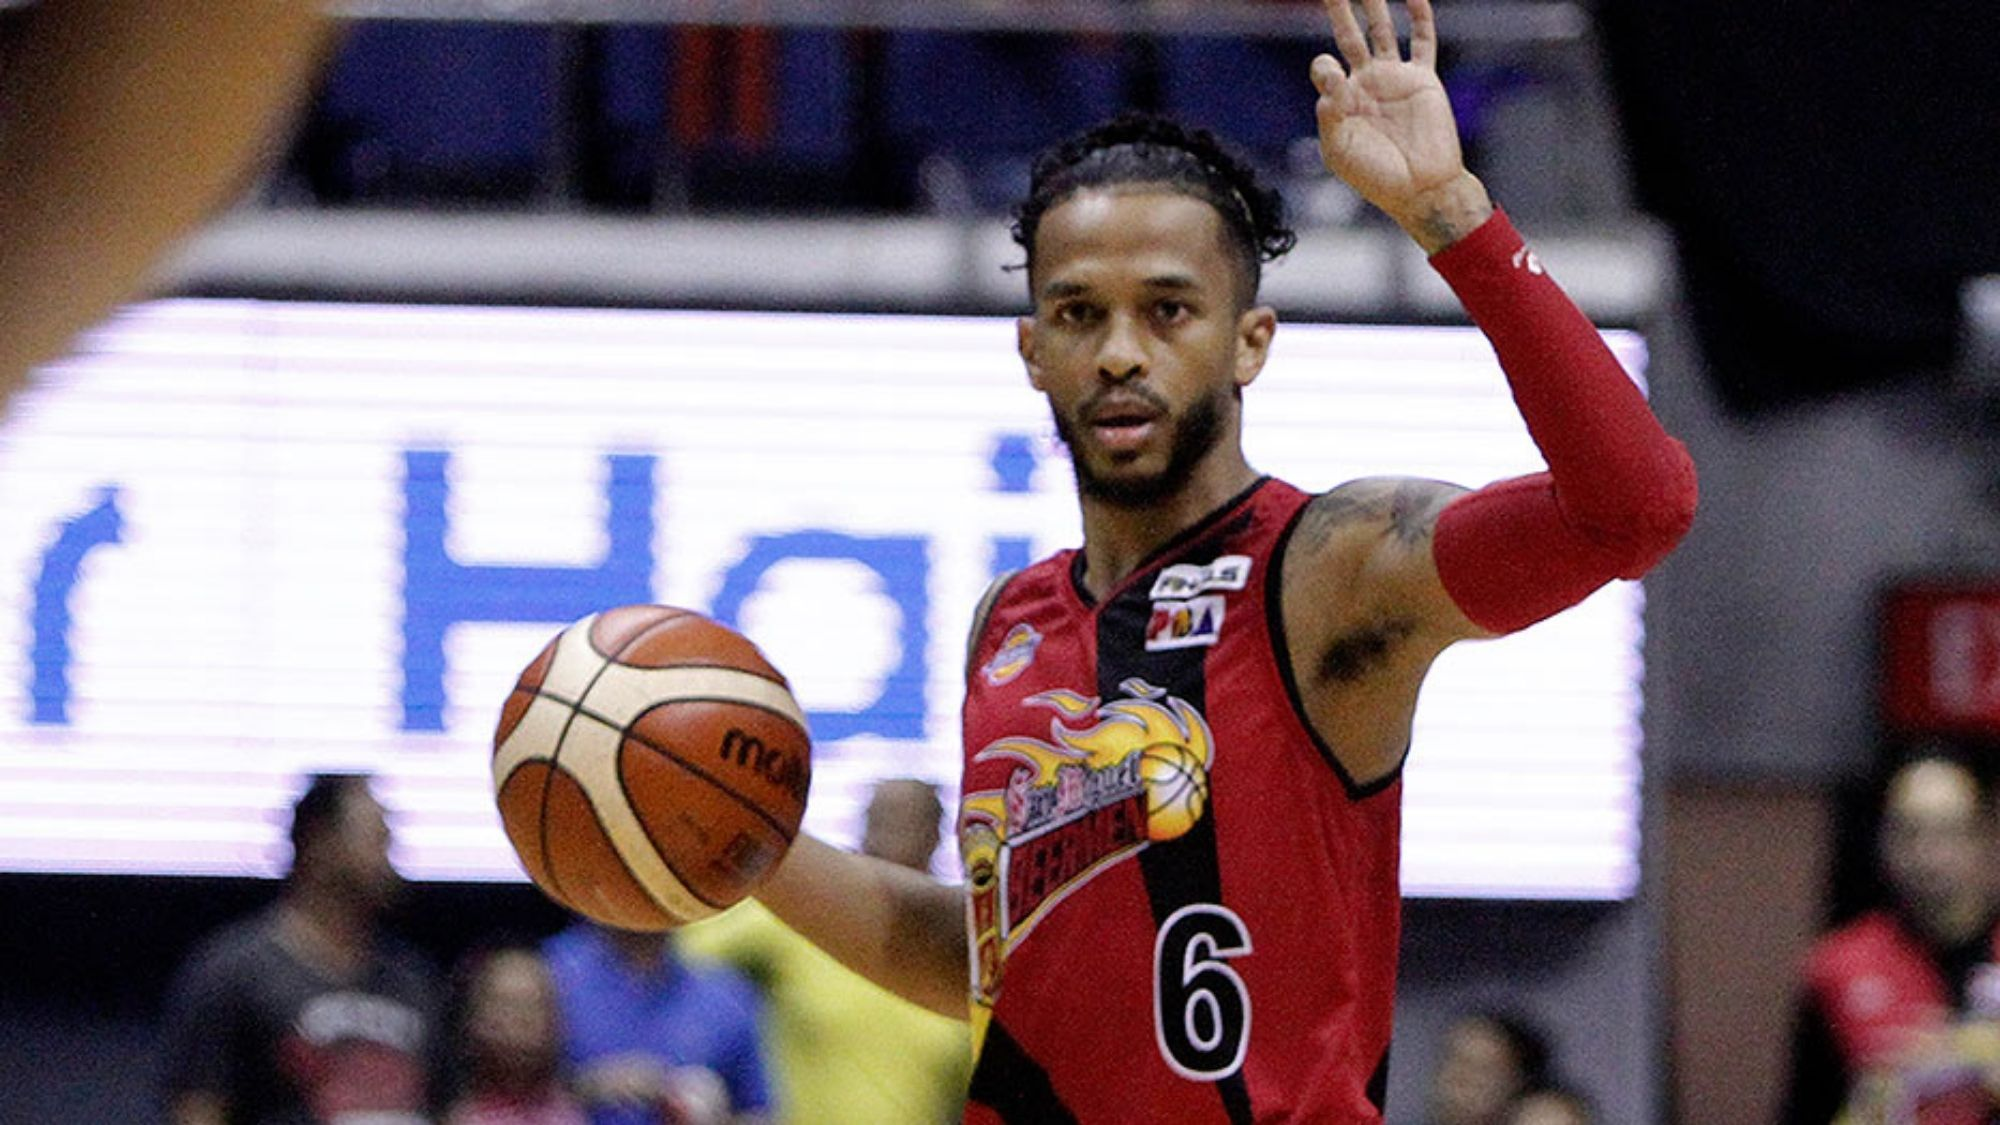 Inspiration for many, SMB's Chris Ross finally gets college degree after 13 years